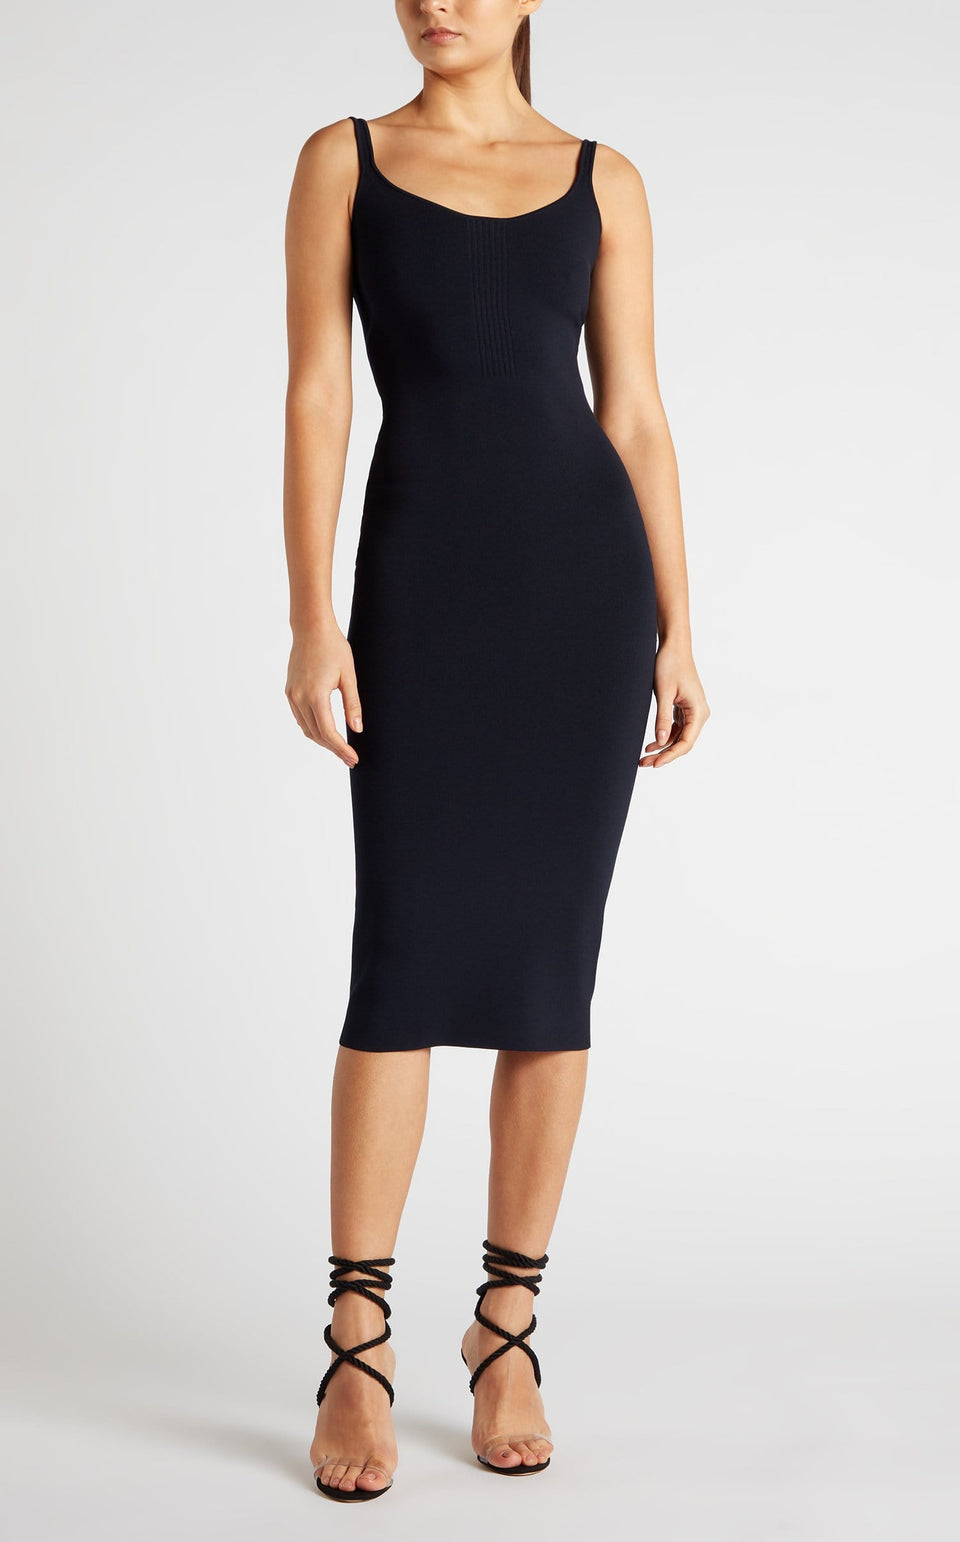 Taro Dress In Navy from Roland Mouret